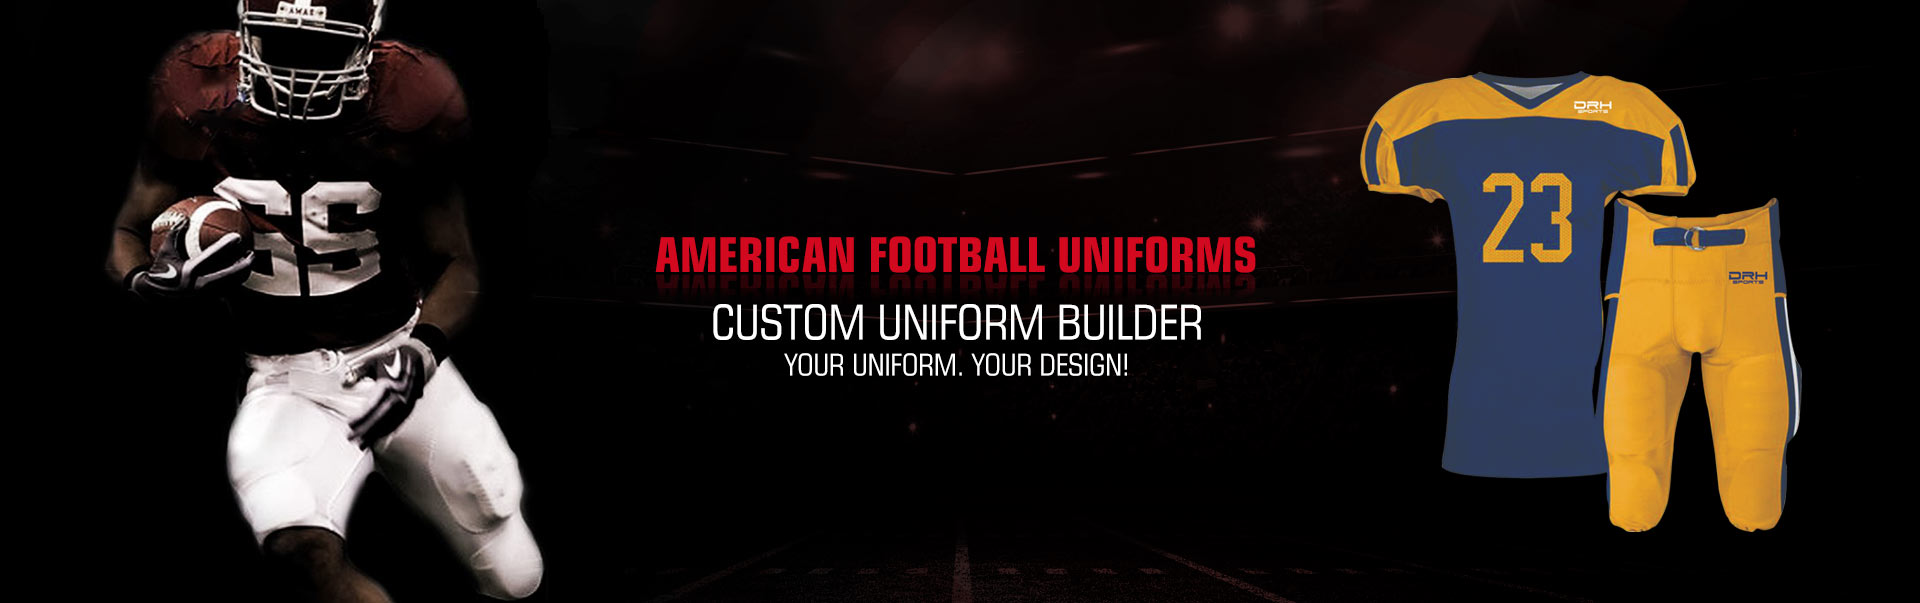 American Football Uniform Wholesaler, Suppliers in United States